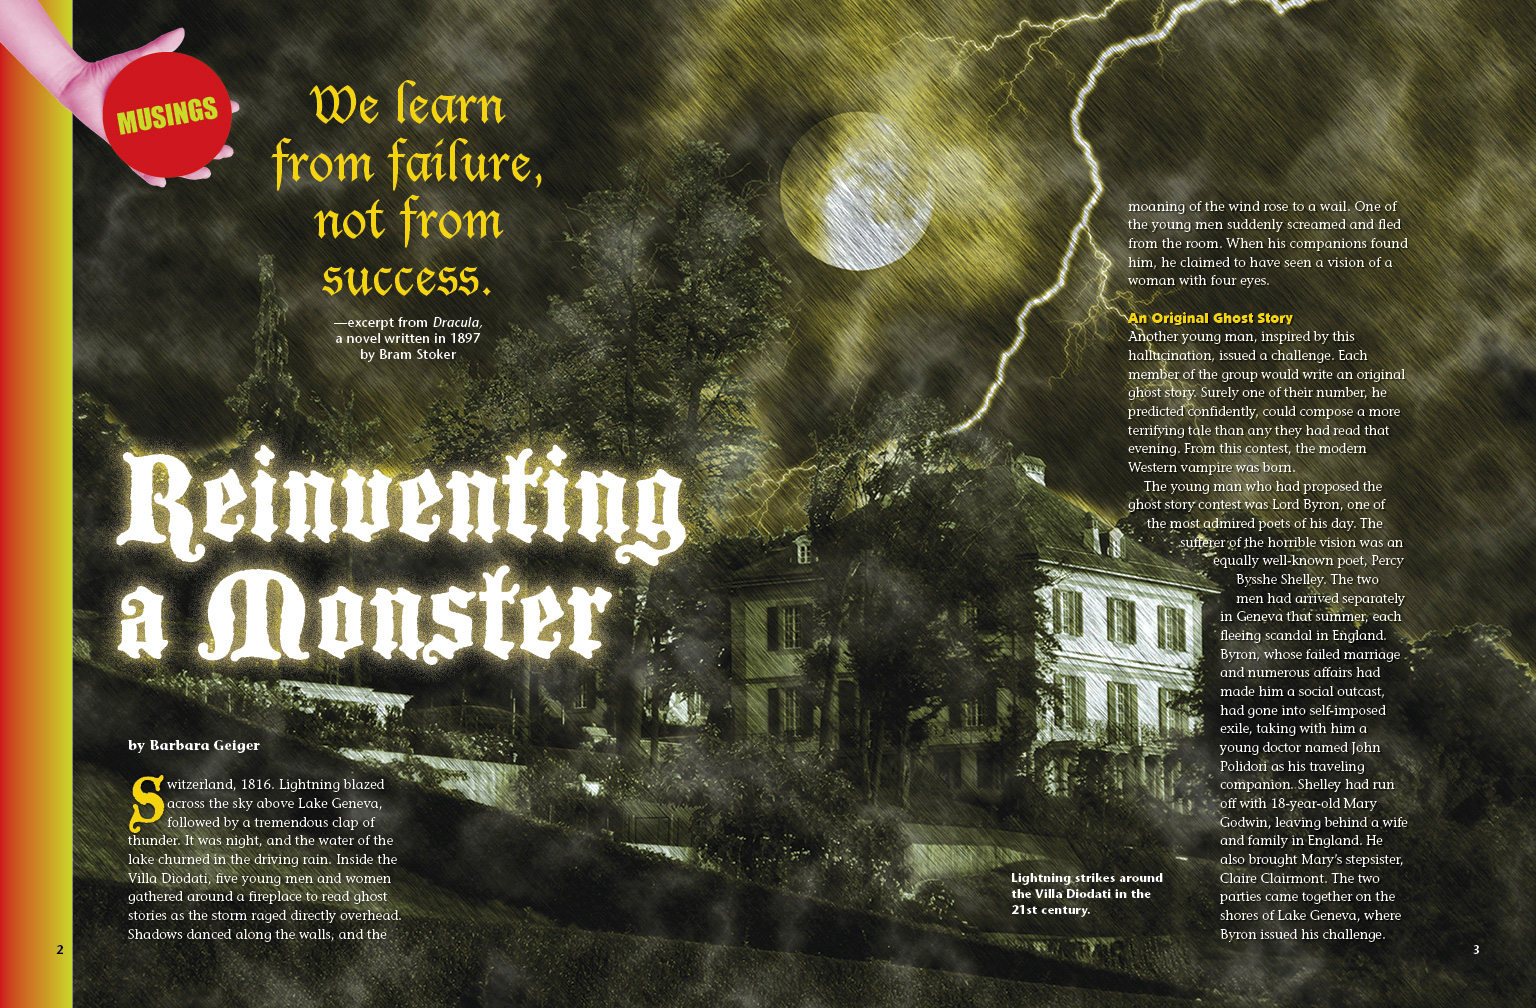 Reinventing a Monster